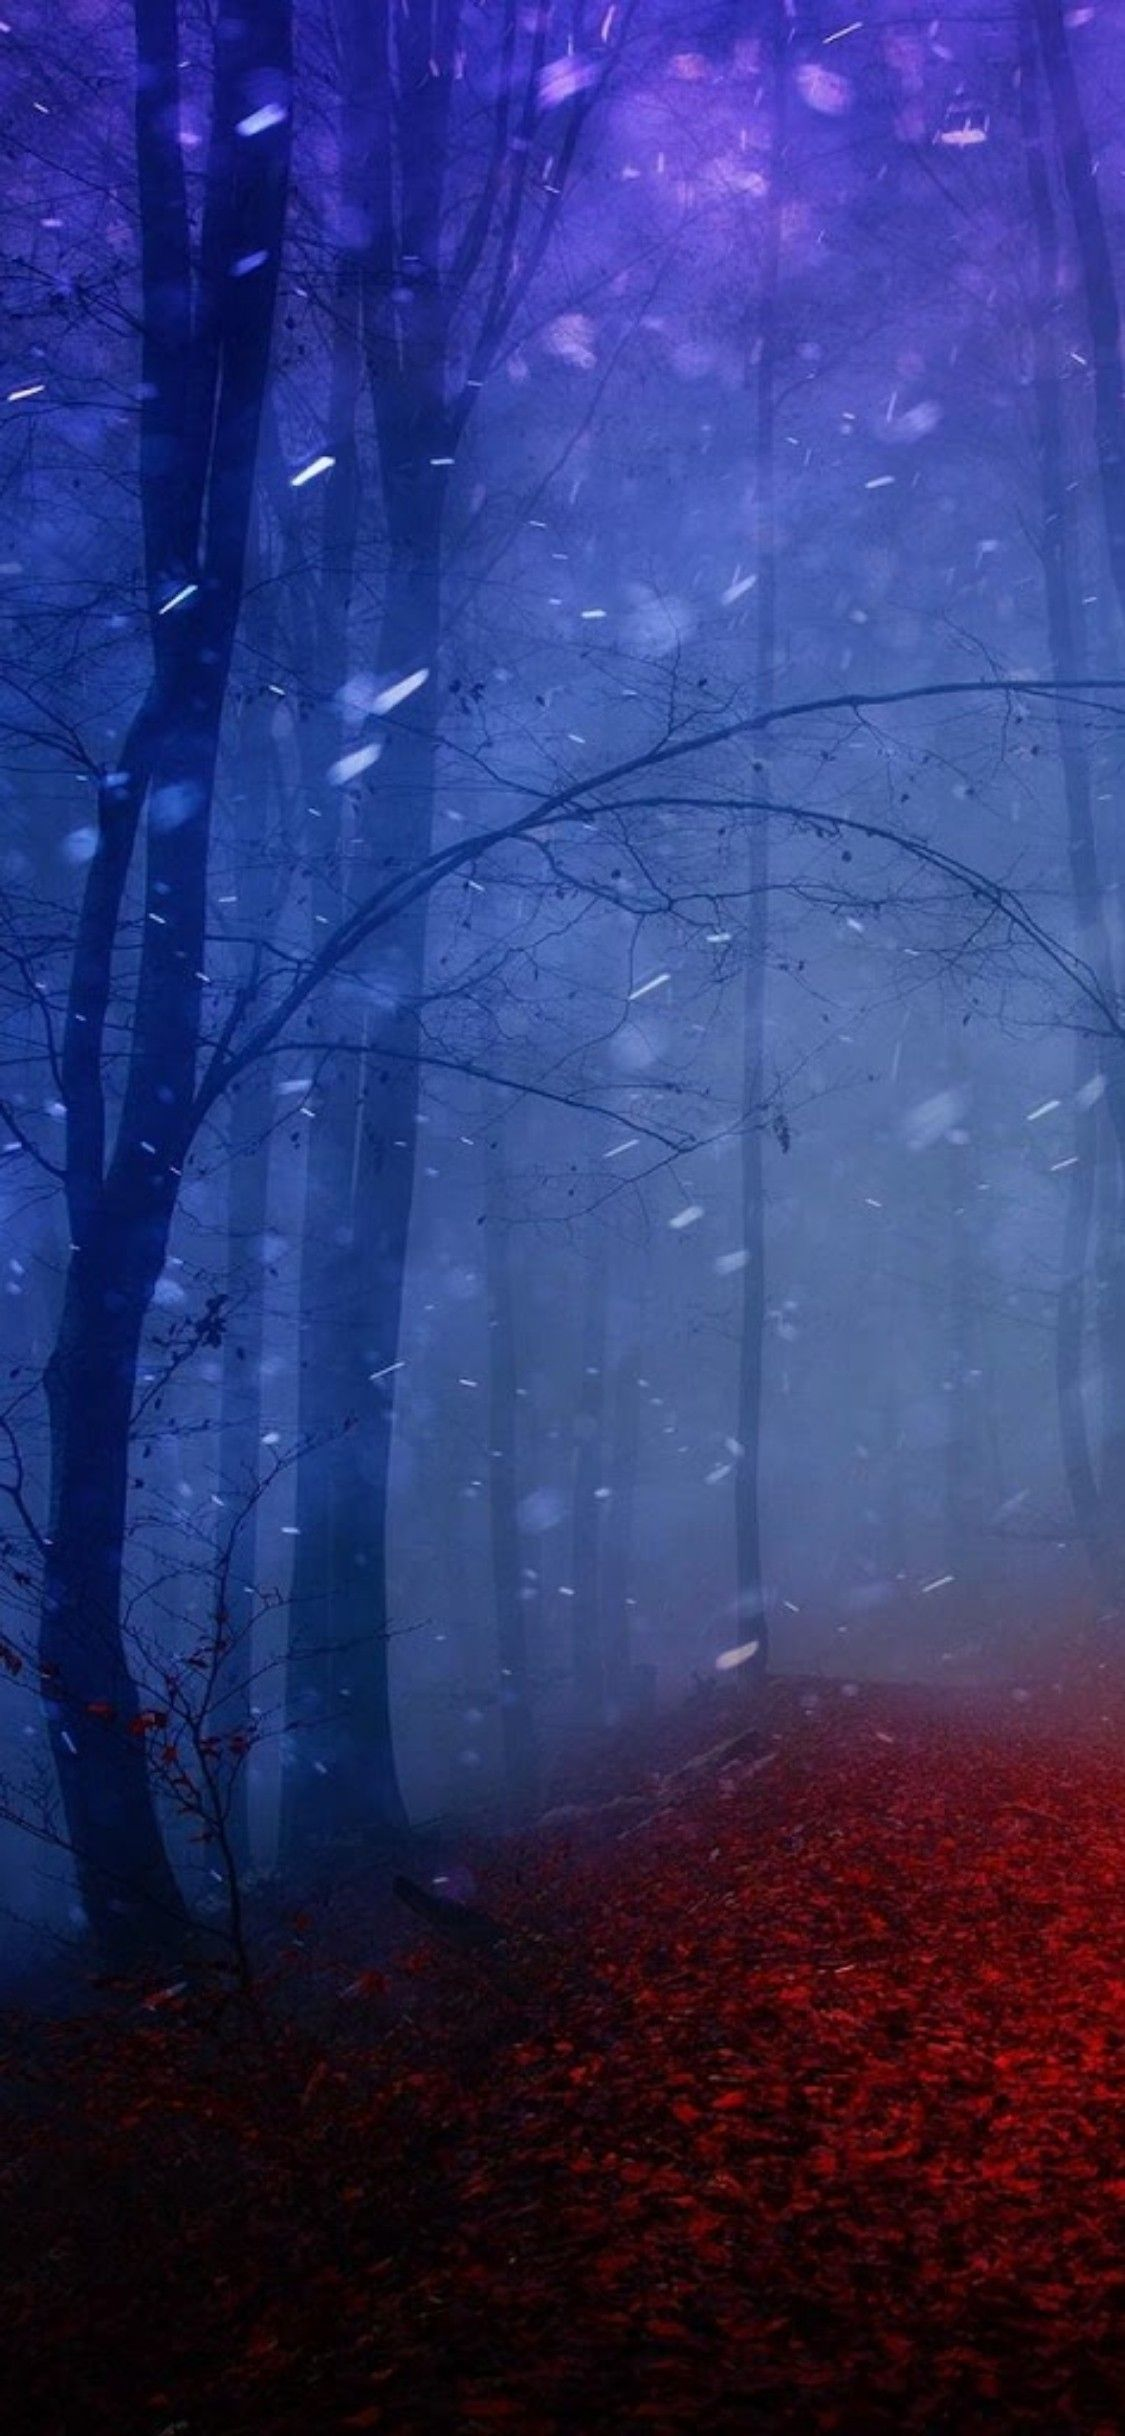 iOS 11, iPhone X, snow, night, red, trees, woods, nature